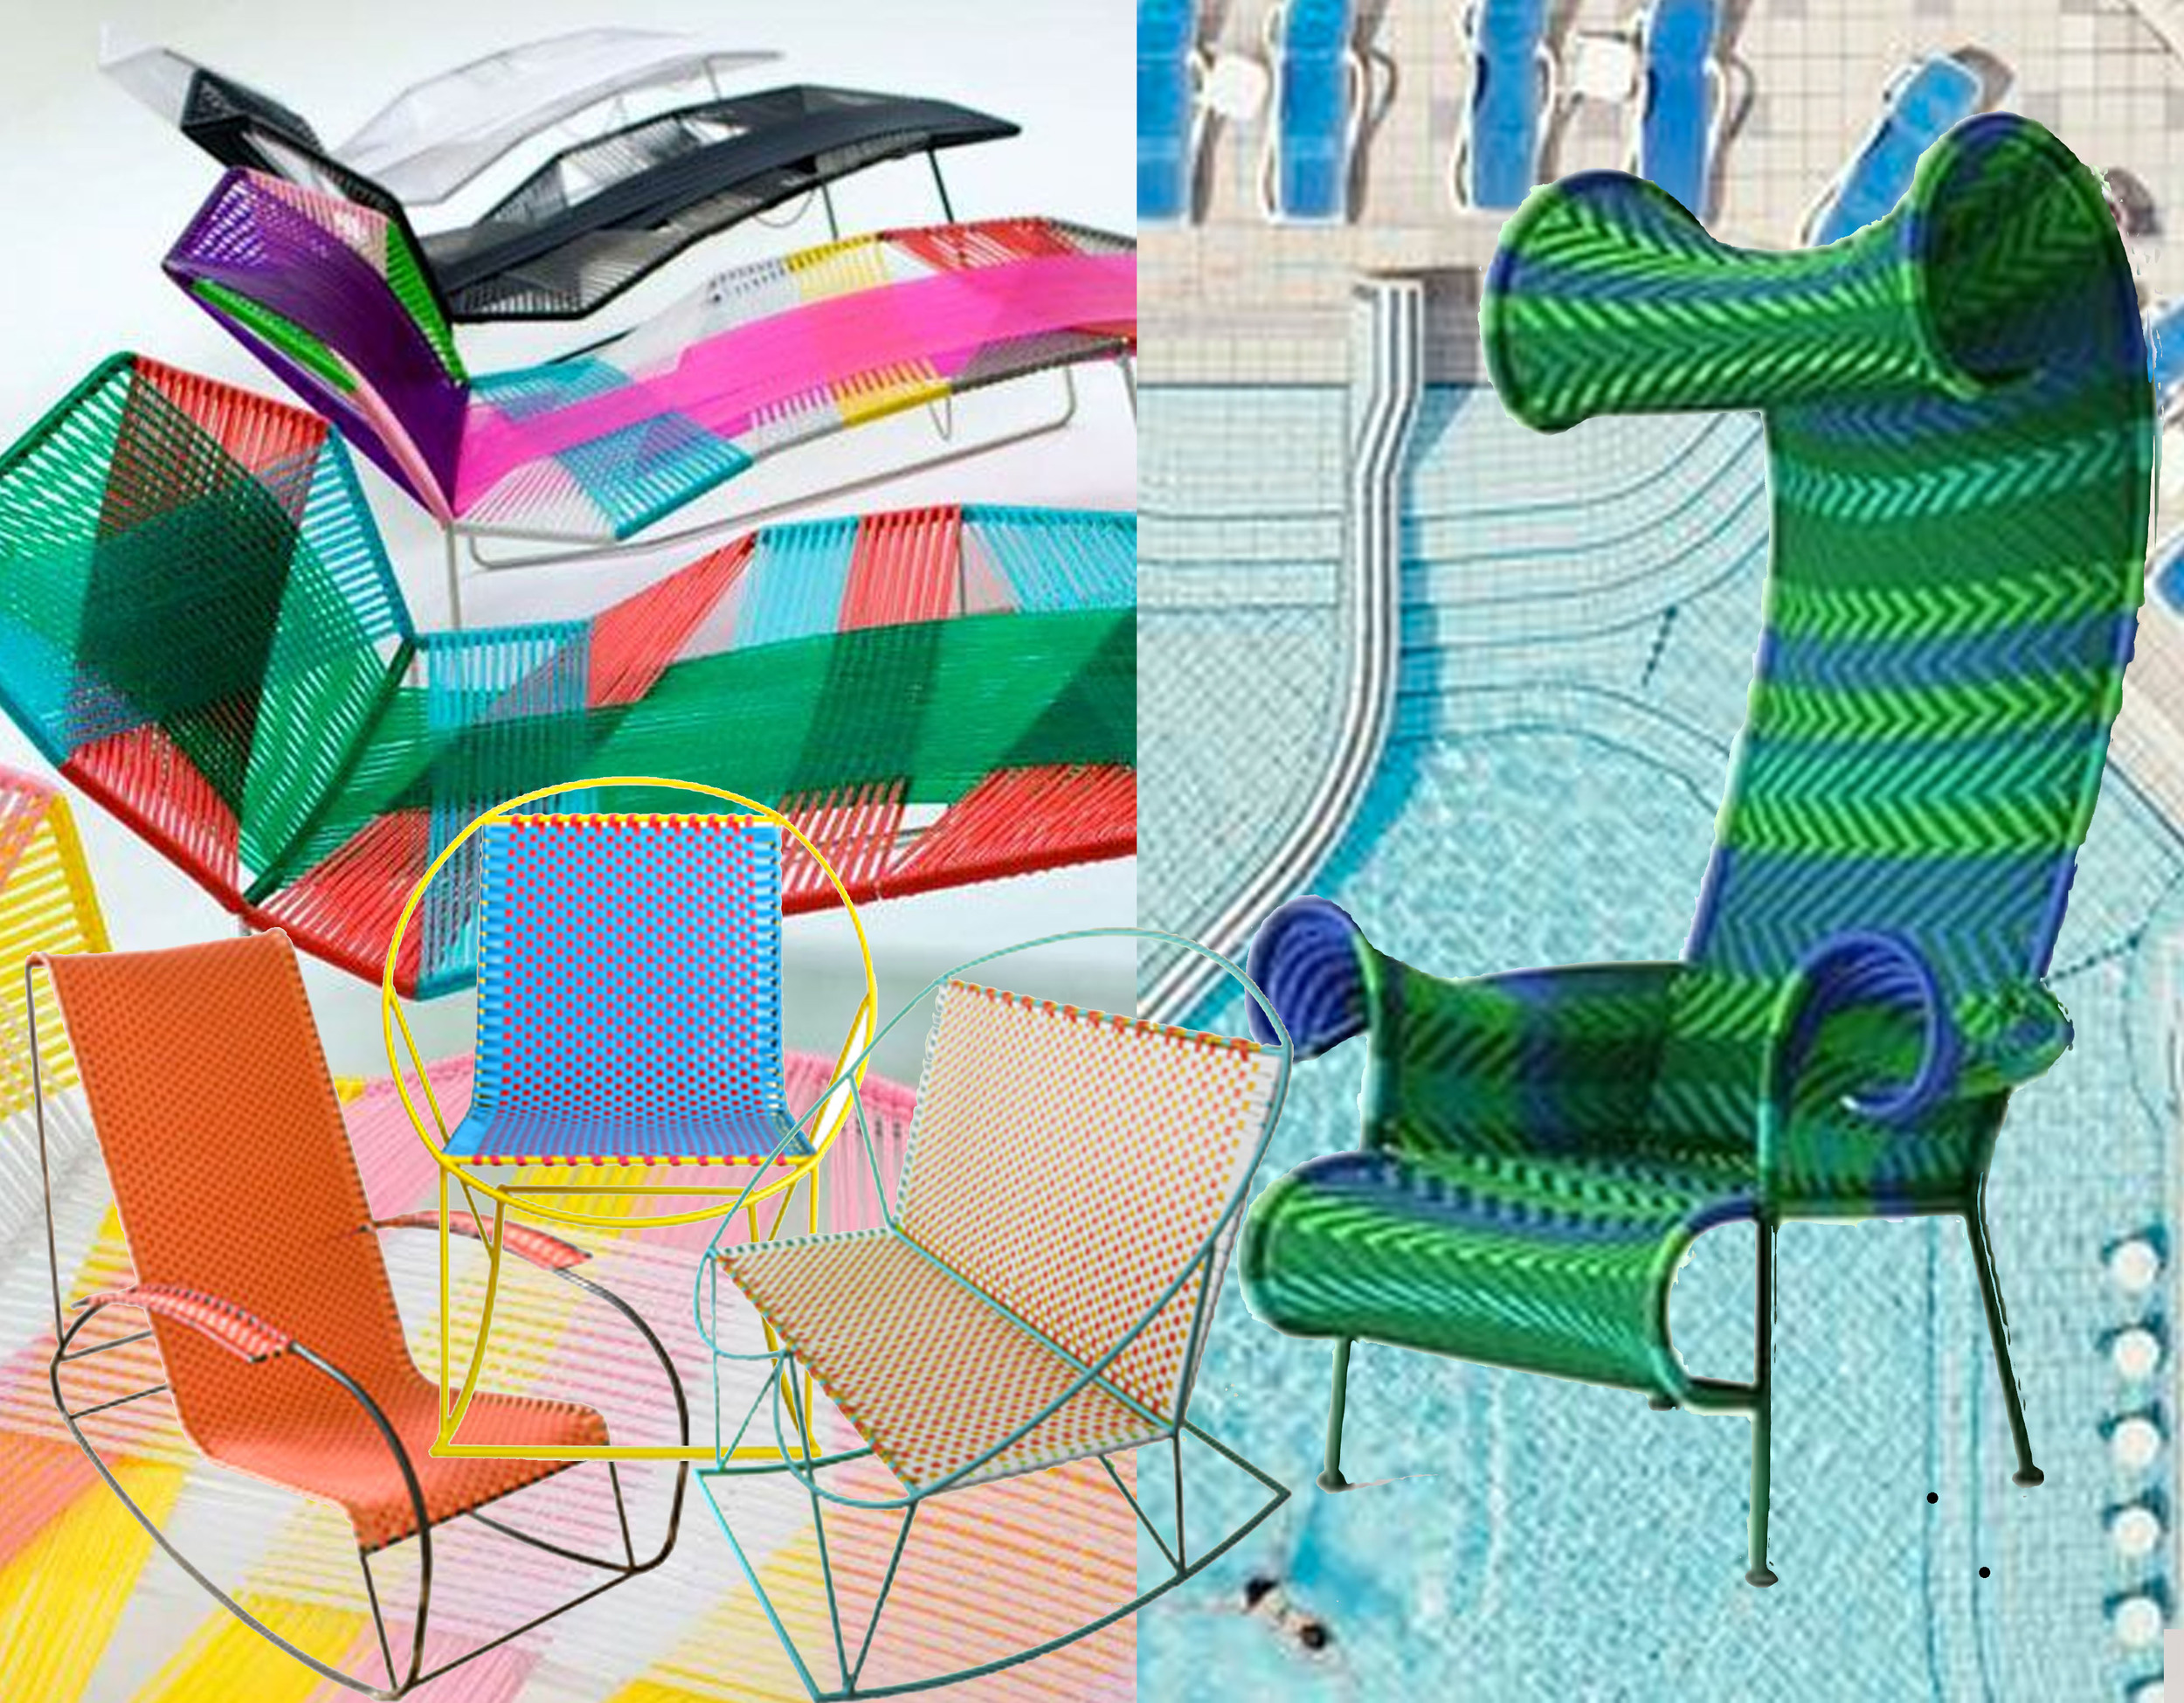 Tropicalia by Patricia Urquiola via  blog-Esprit design  - outdoor chairs  Mecedorama  - Shadowy by Tord Boontje  Moroso